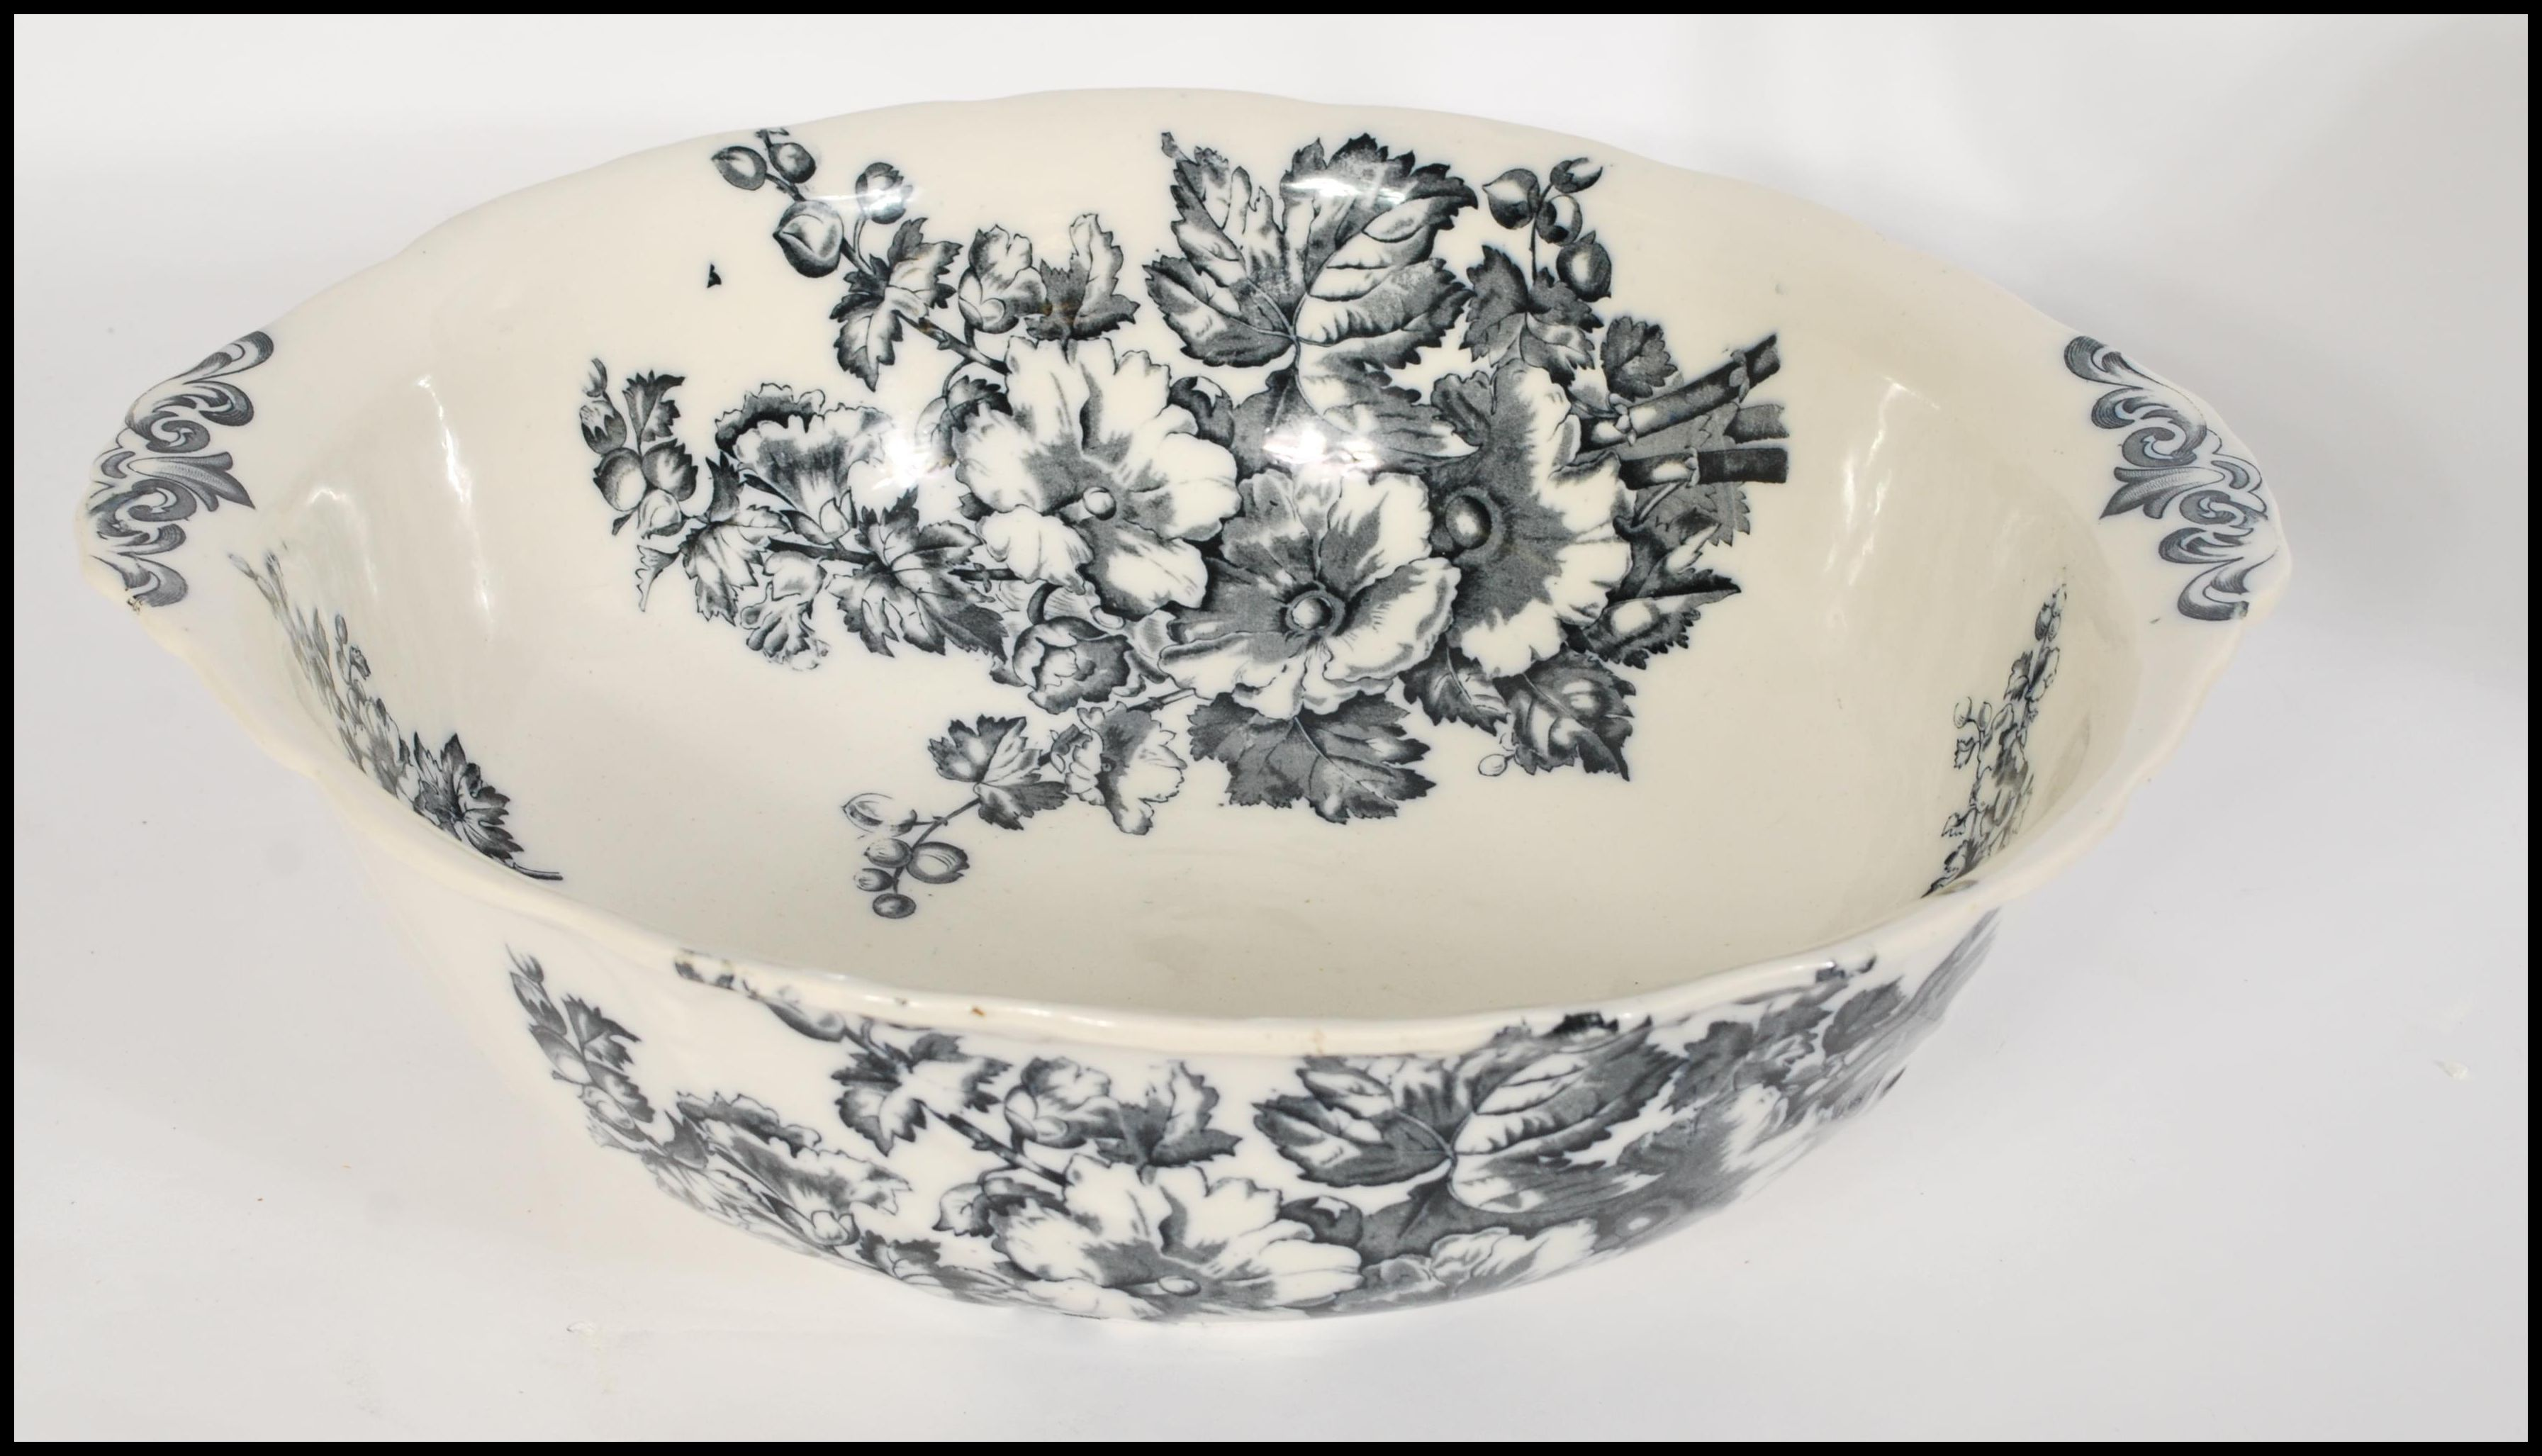 Lot 40 - A Victorian ceramic washbowl and jug set in the ' Hollyhock ' pattern by S Bridgwood & Sons.